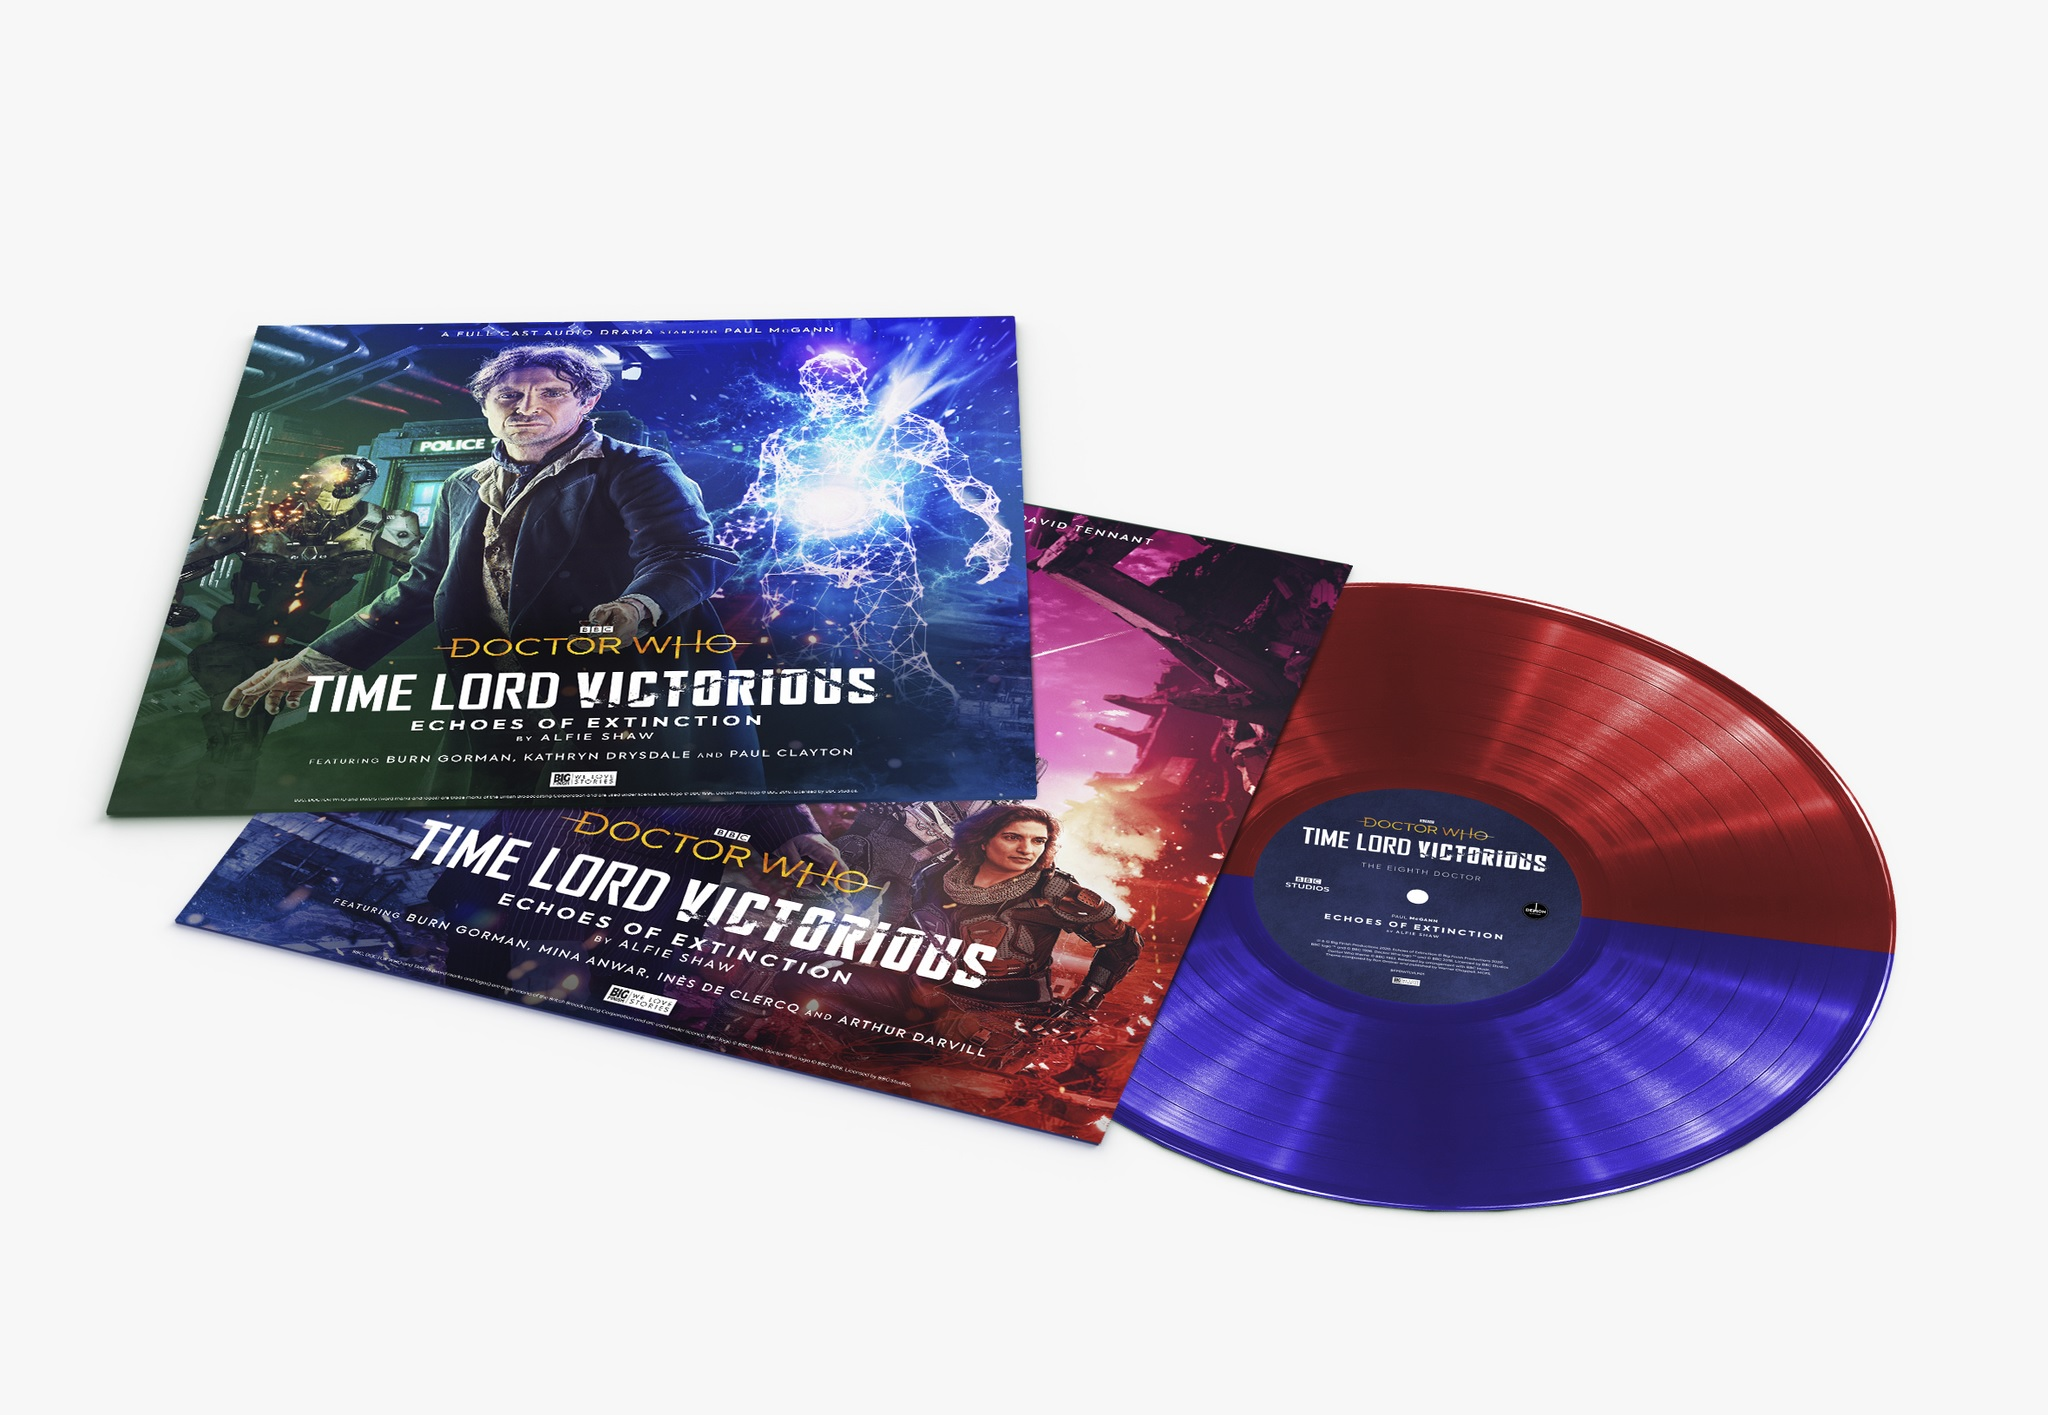 David Tennant and Paul McGann to Star in Time Lord Victorious Audios on Vinyl and Digital Download